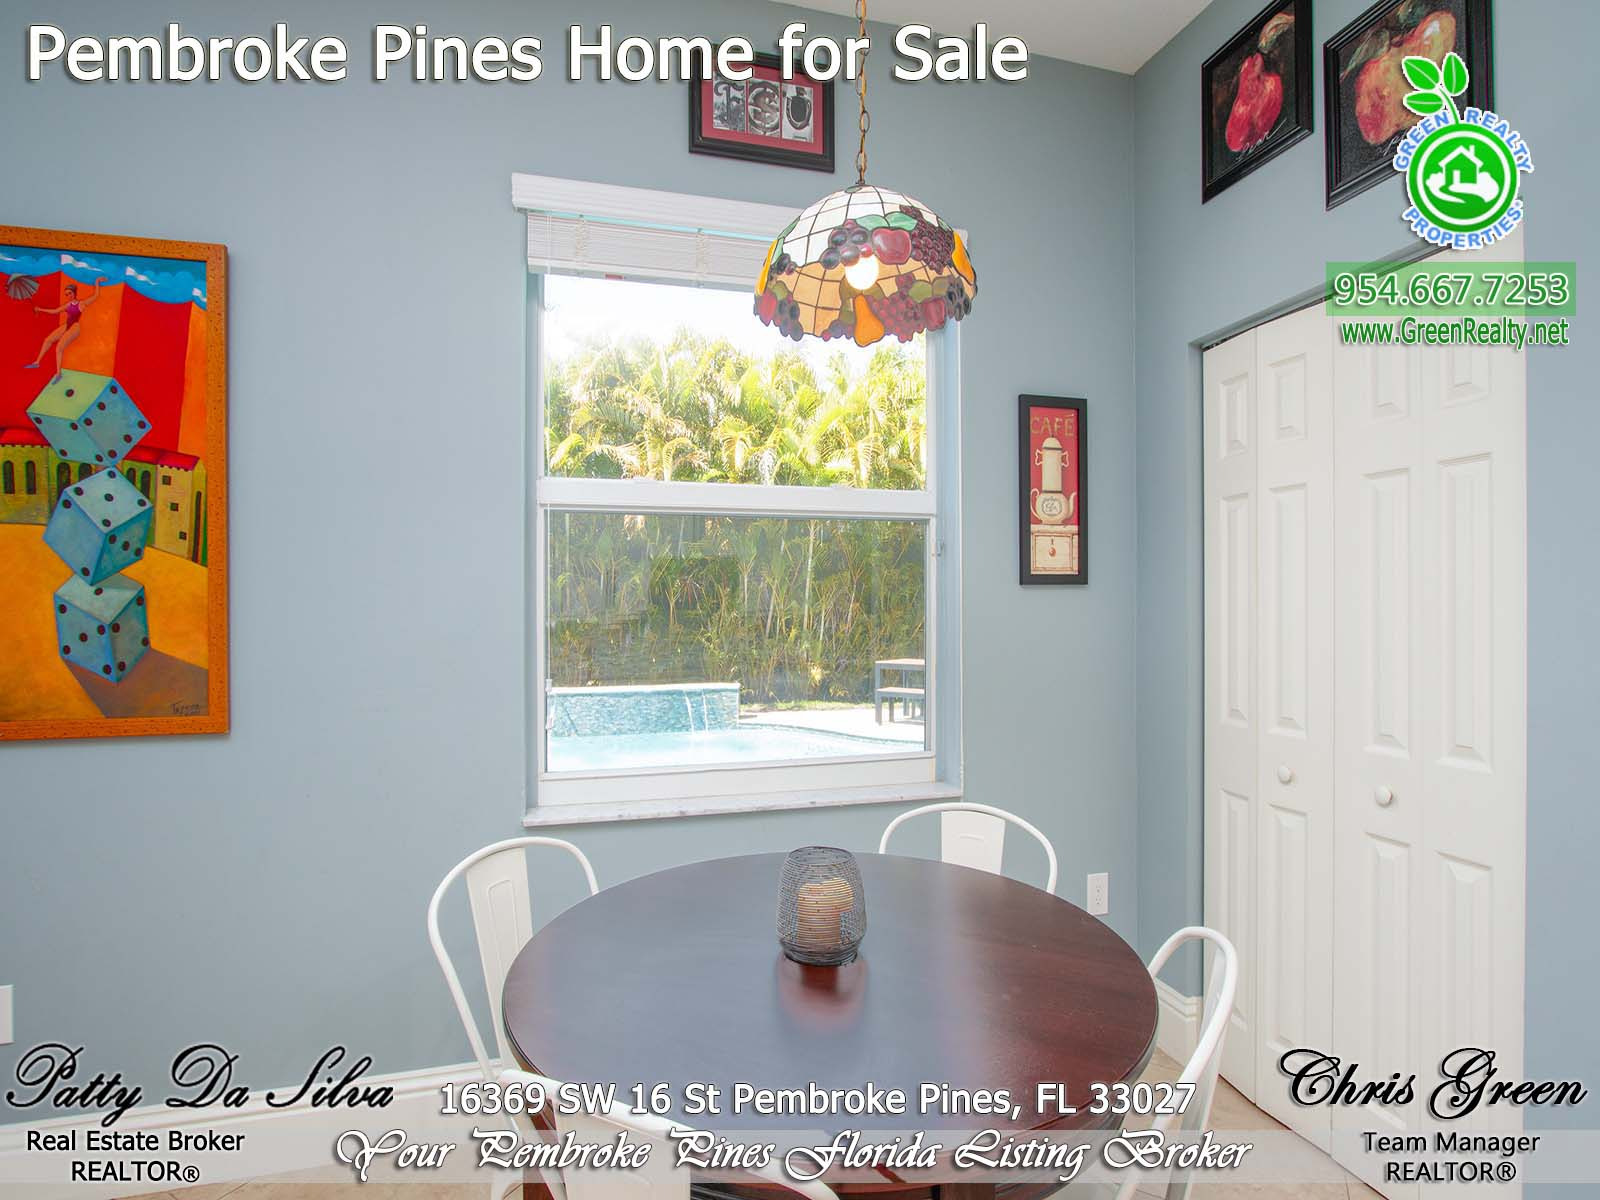 7 Pembroke Pines Realtor Broker Patty Da Silva south florida listing (9)